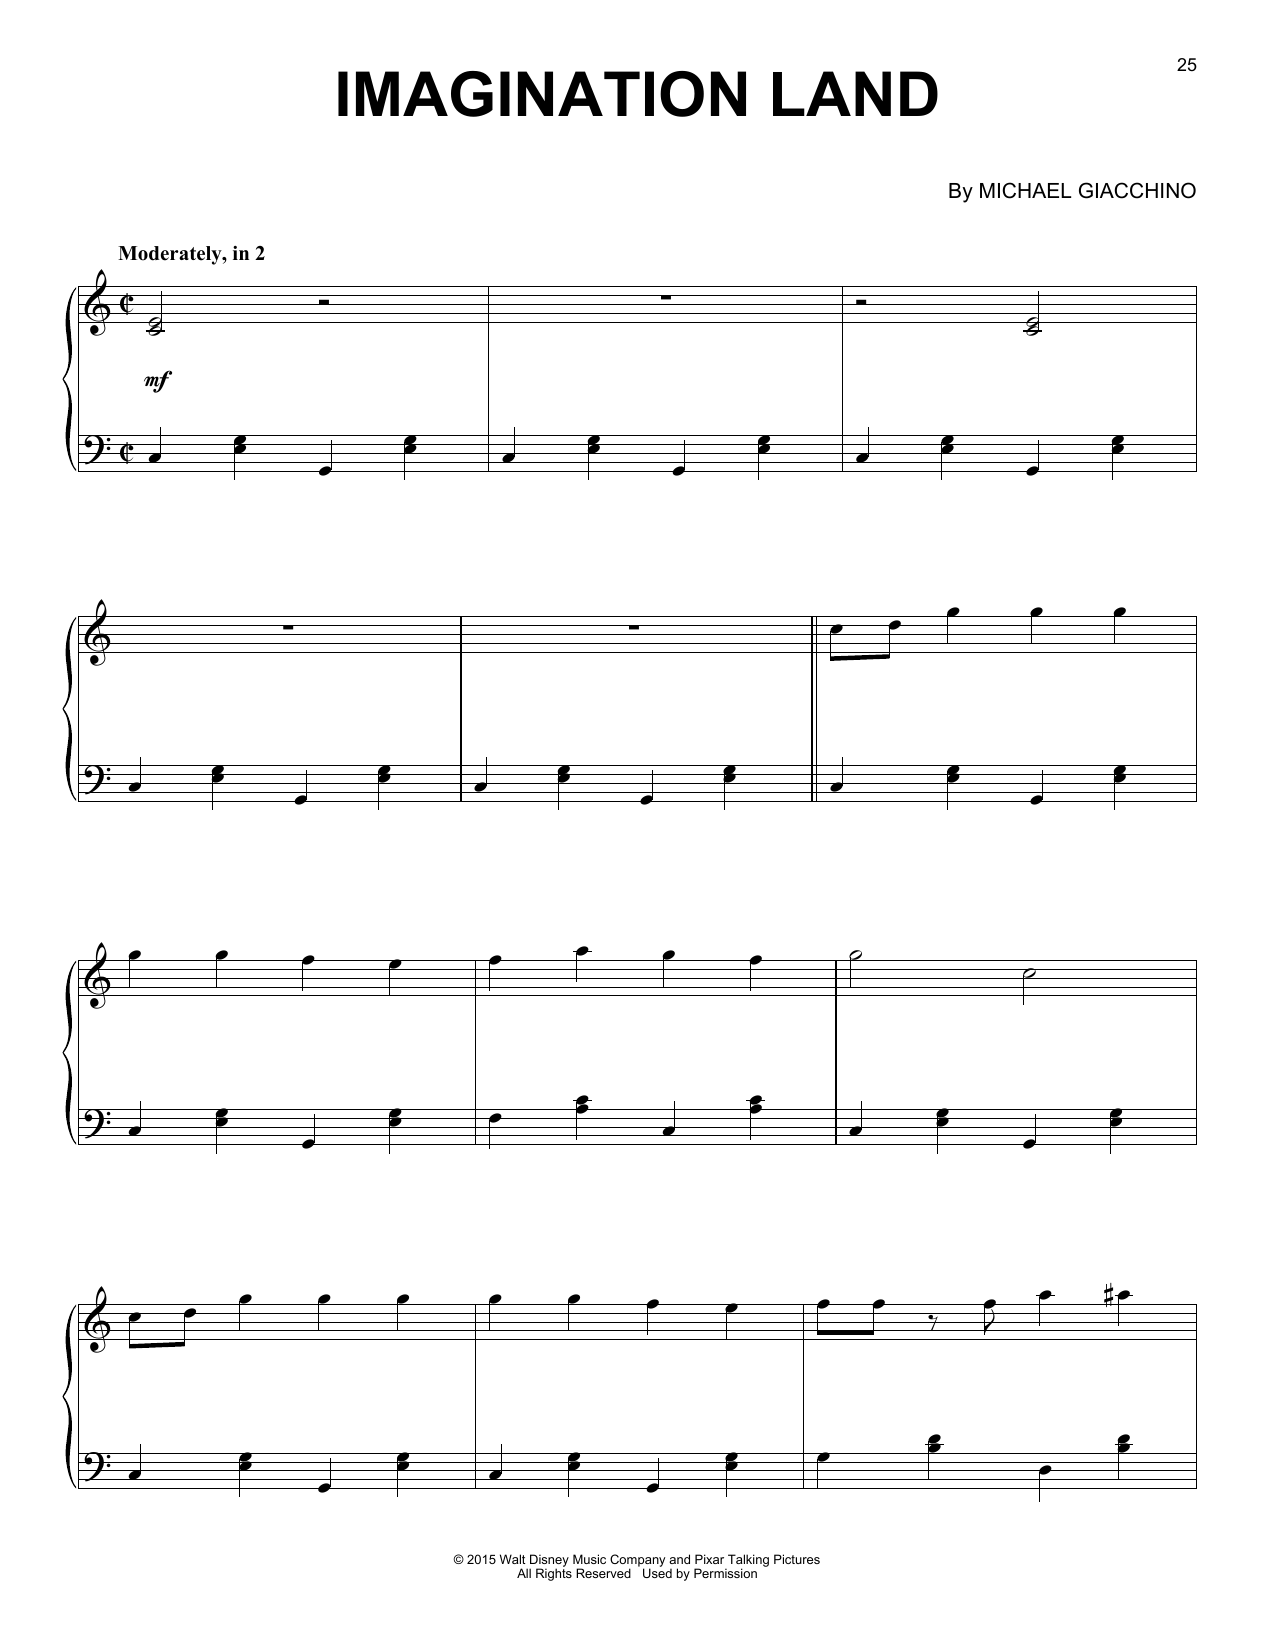 Download Michael Giacchino 'Imagination Land' Digital Sheet Music Notes & Chords and start playing in minutes